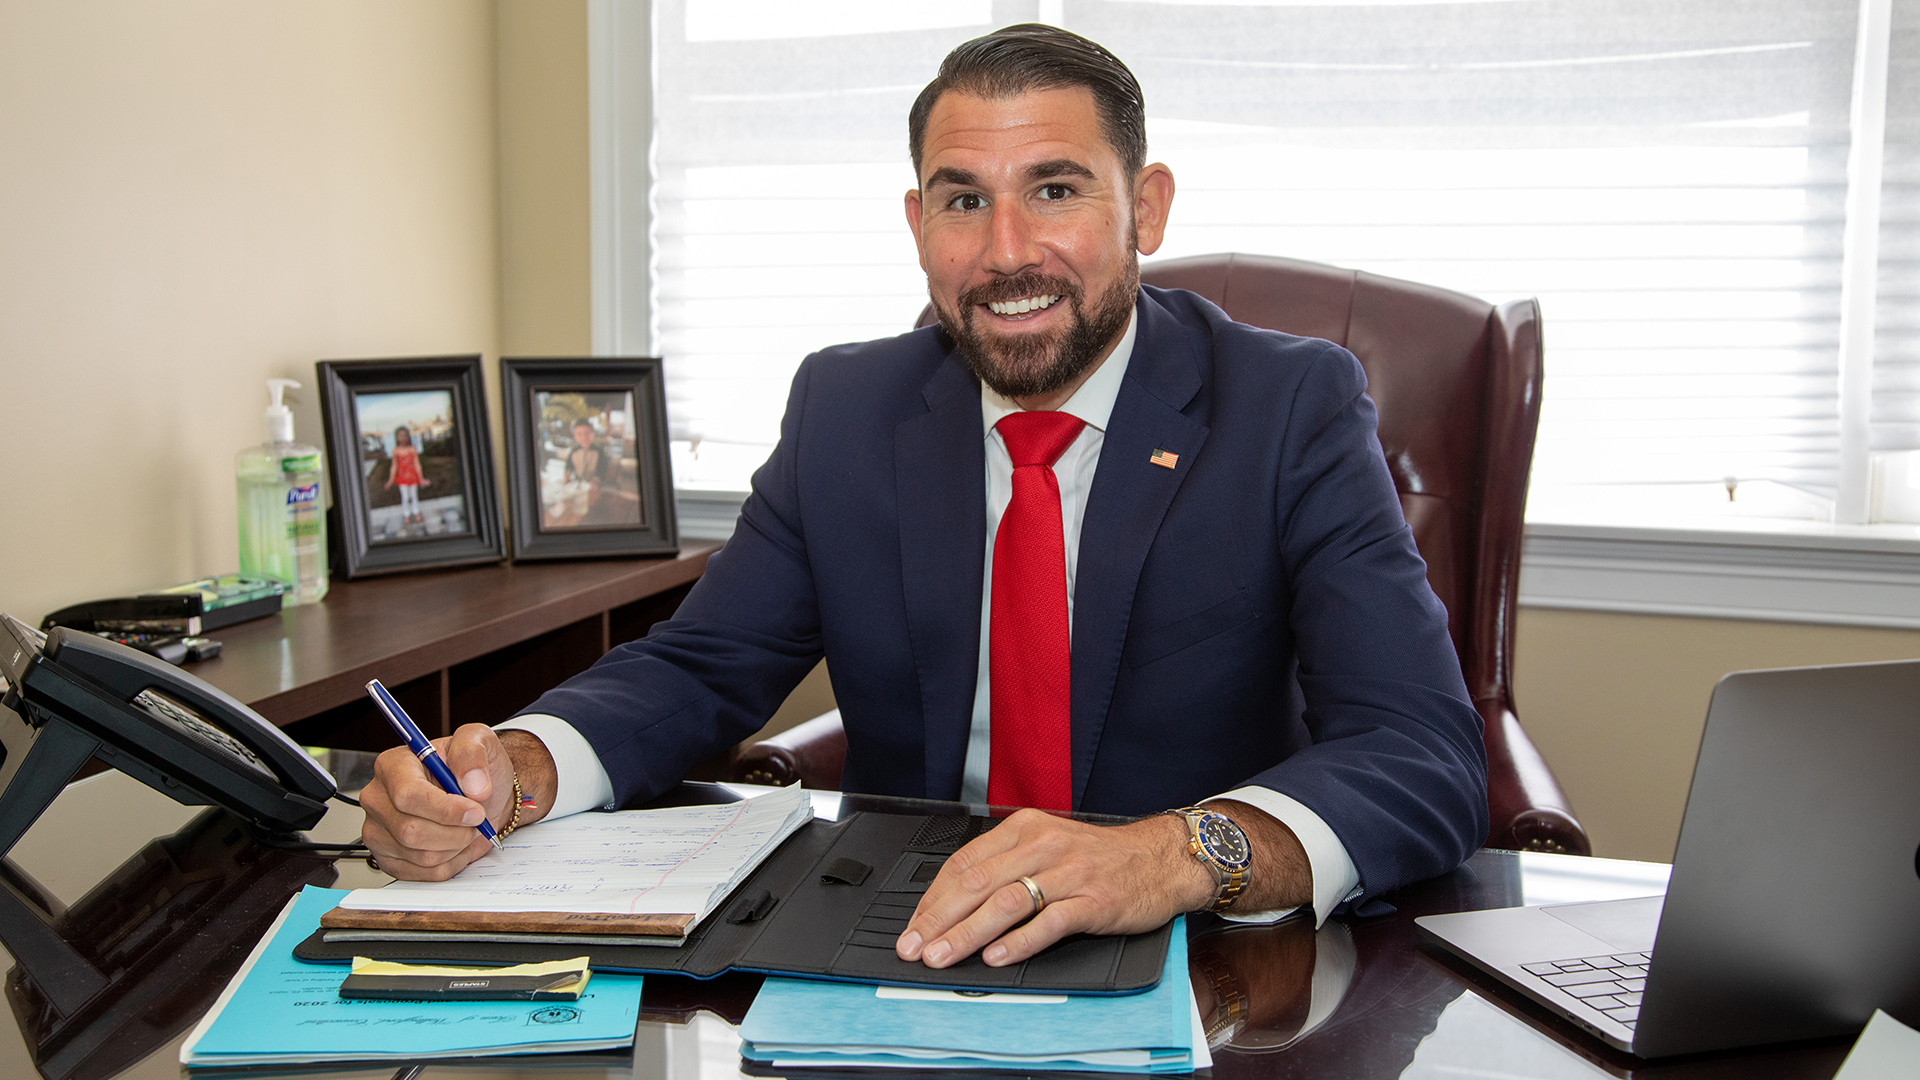 Paul Cicarella Earns Public Safety Endorsements from North Haven Police Union, Connecticut State Fraternal Order of Police and the New Haven Police Union